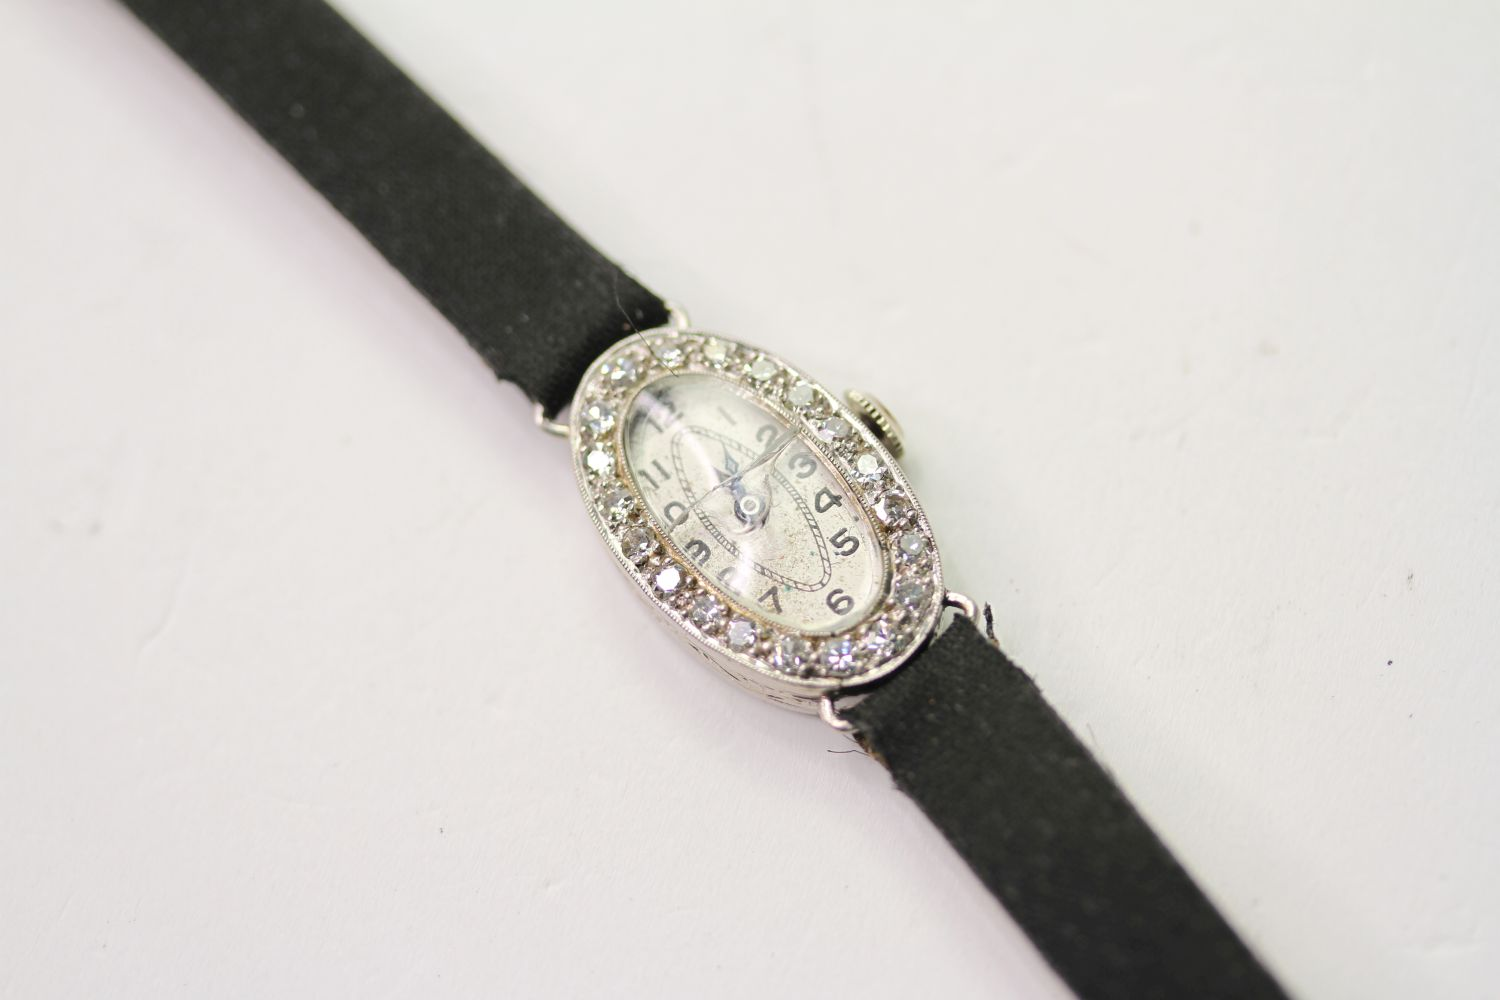 PLATINUM & DIAMOND COCKTAIL WRISTWATCH, oval silver dial with arabic numbers, 14mm case, diamond set